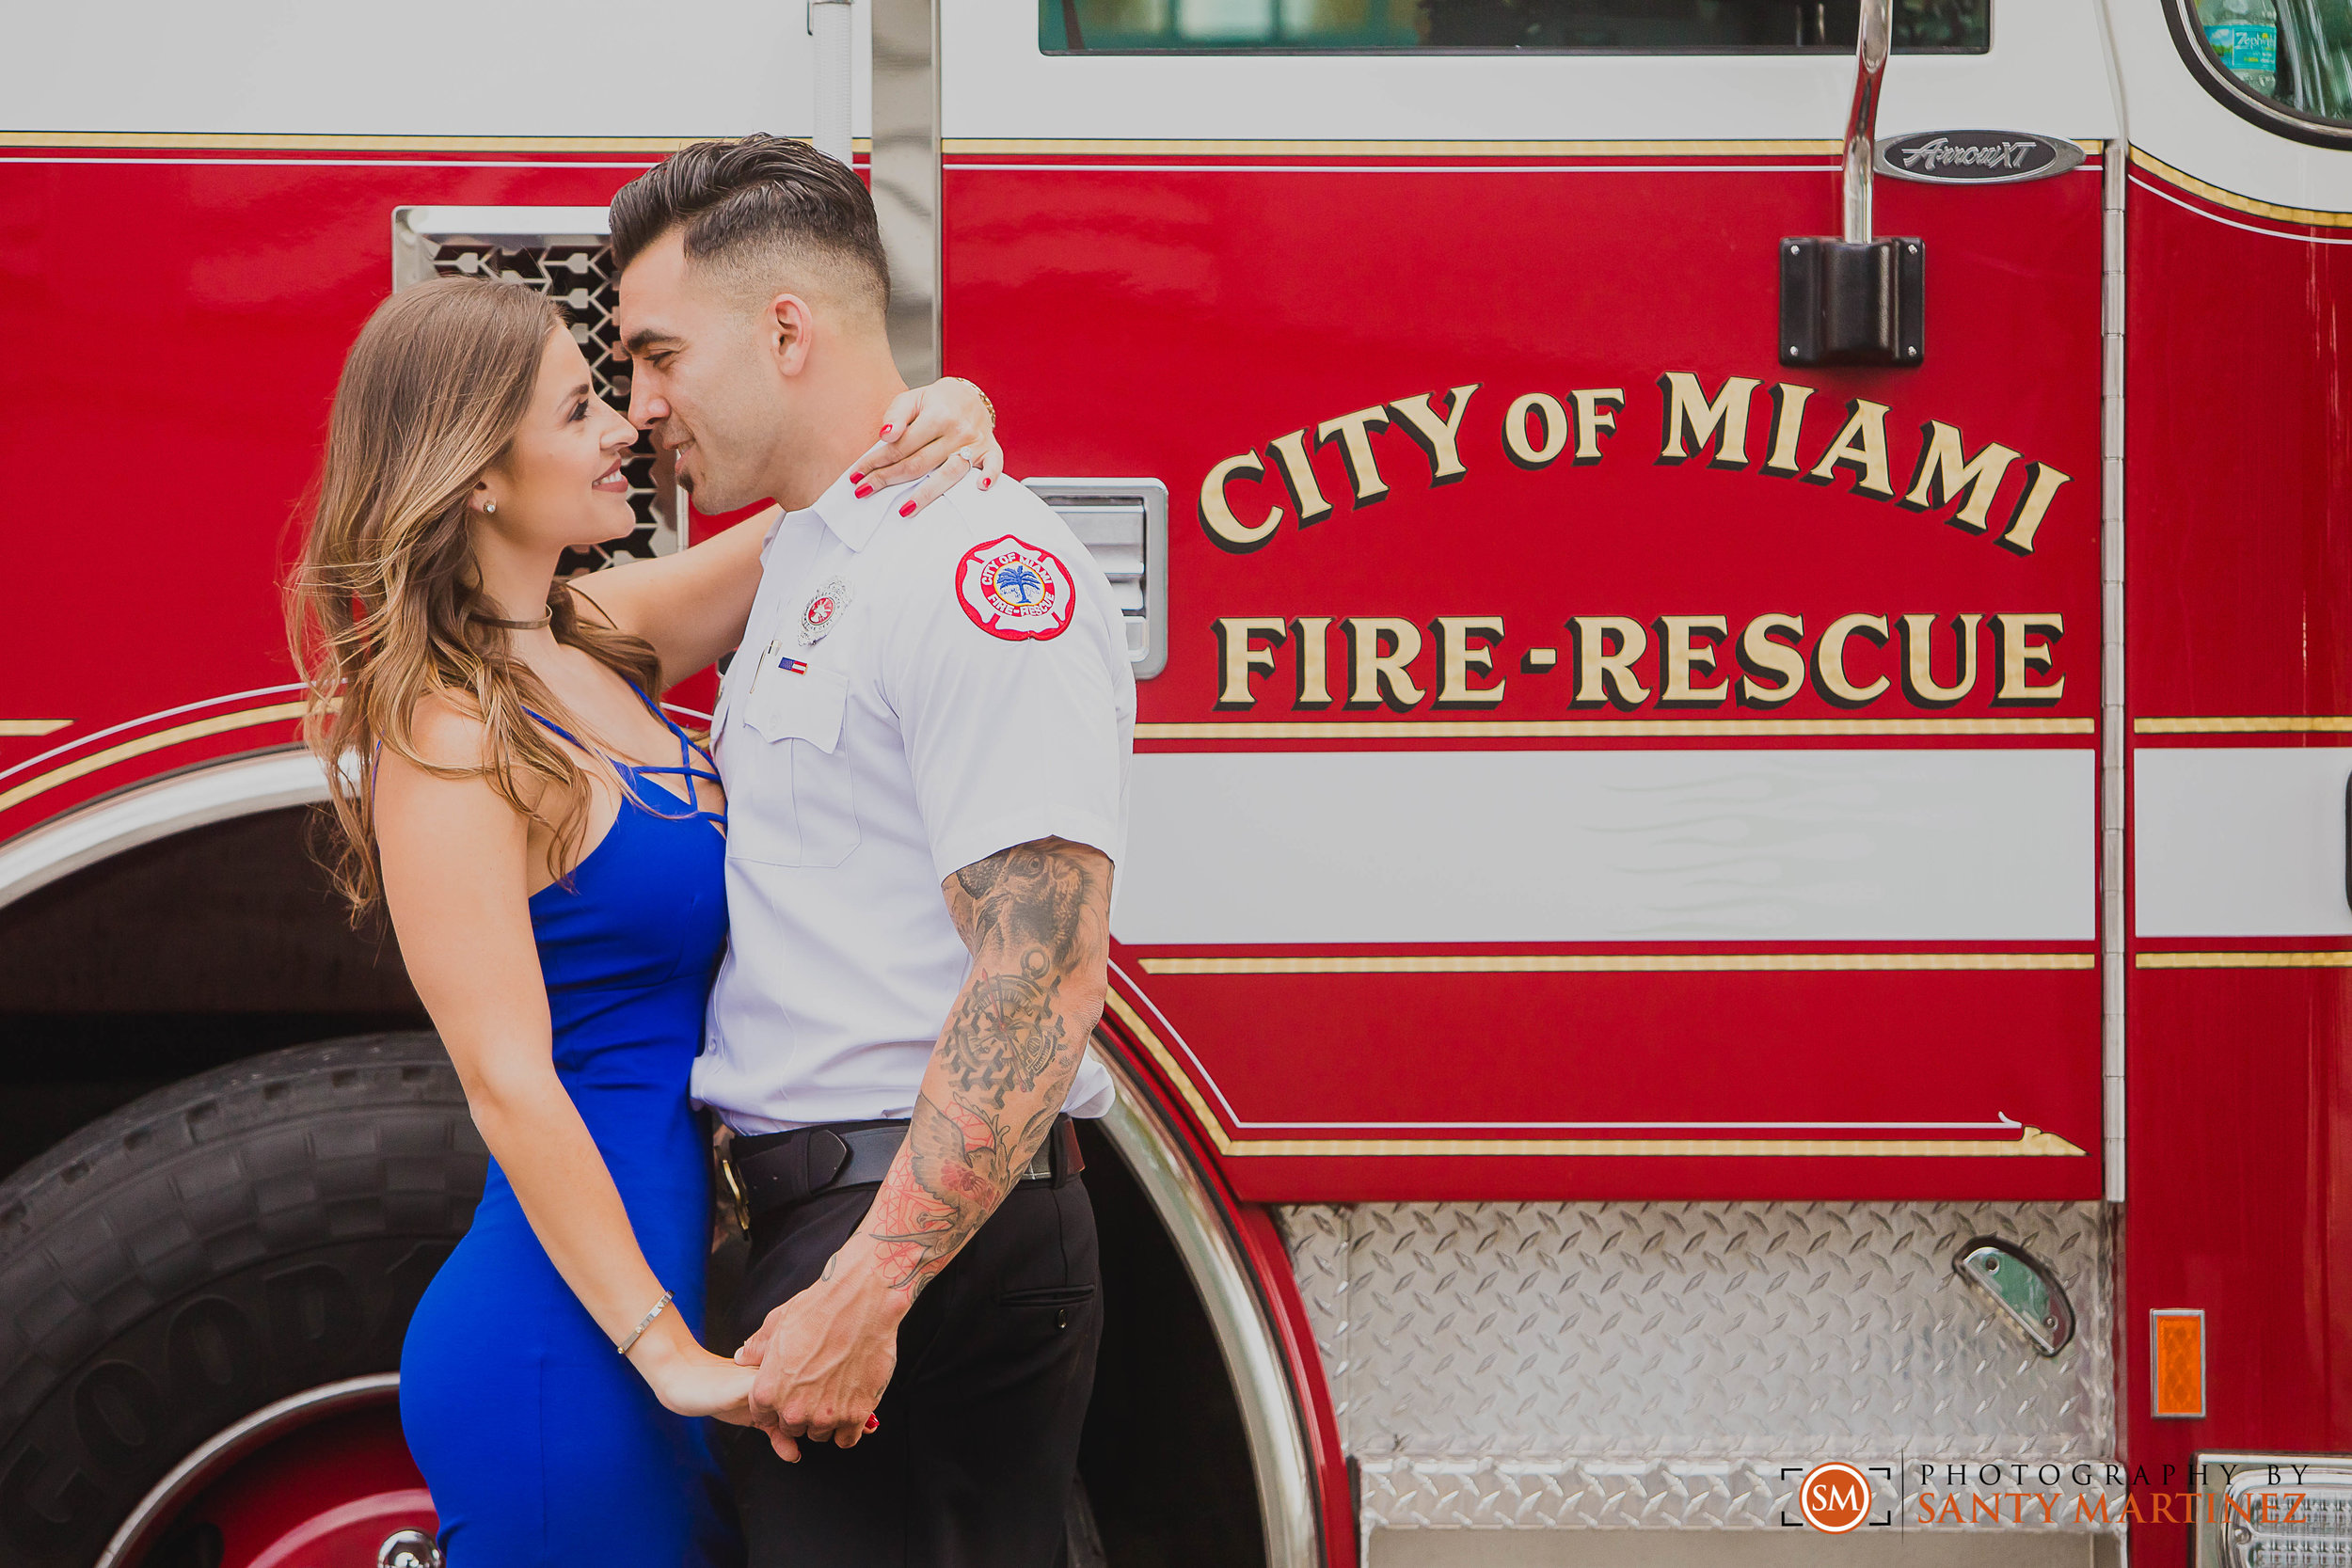 Miami Firefighter Engagement Session - Photography by Santy Martinez-3.jpg